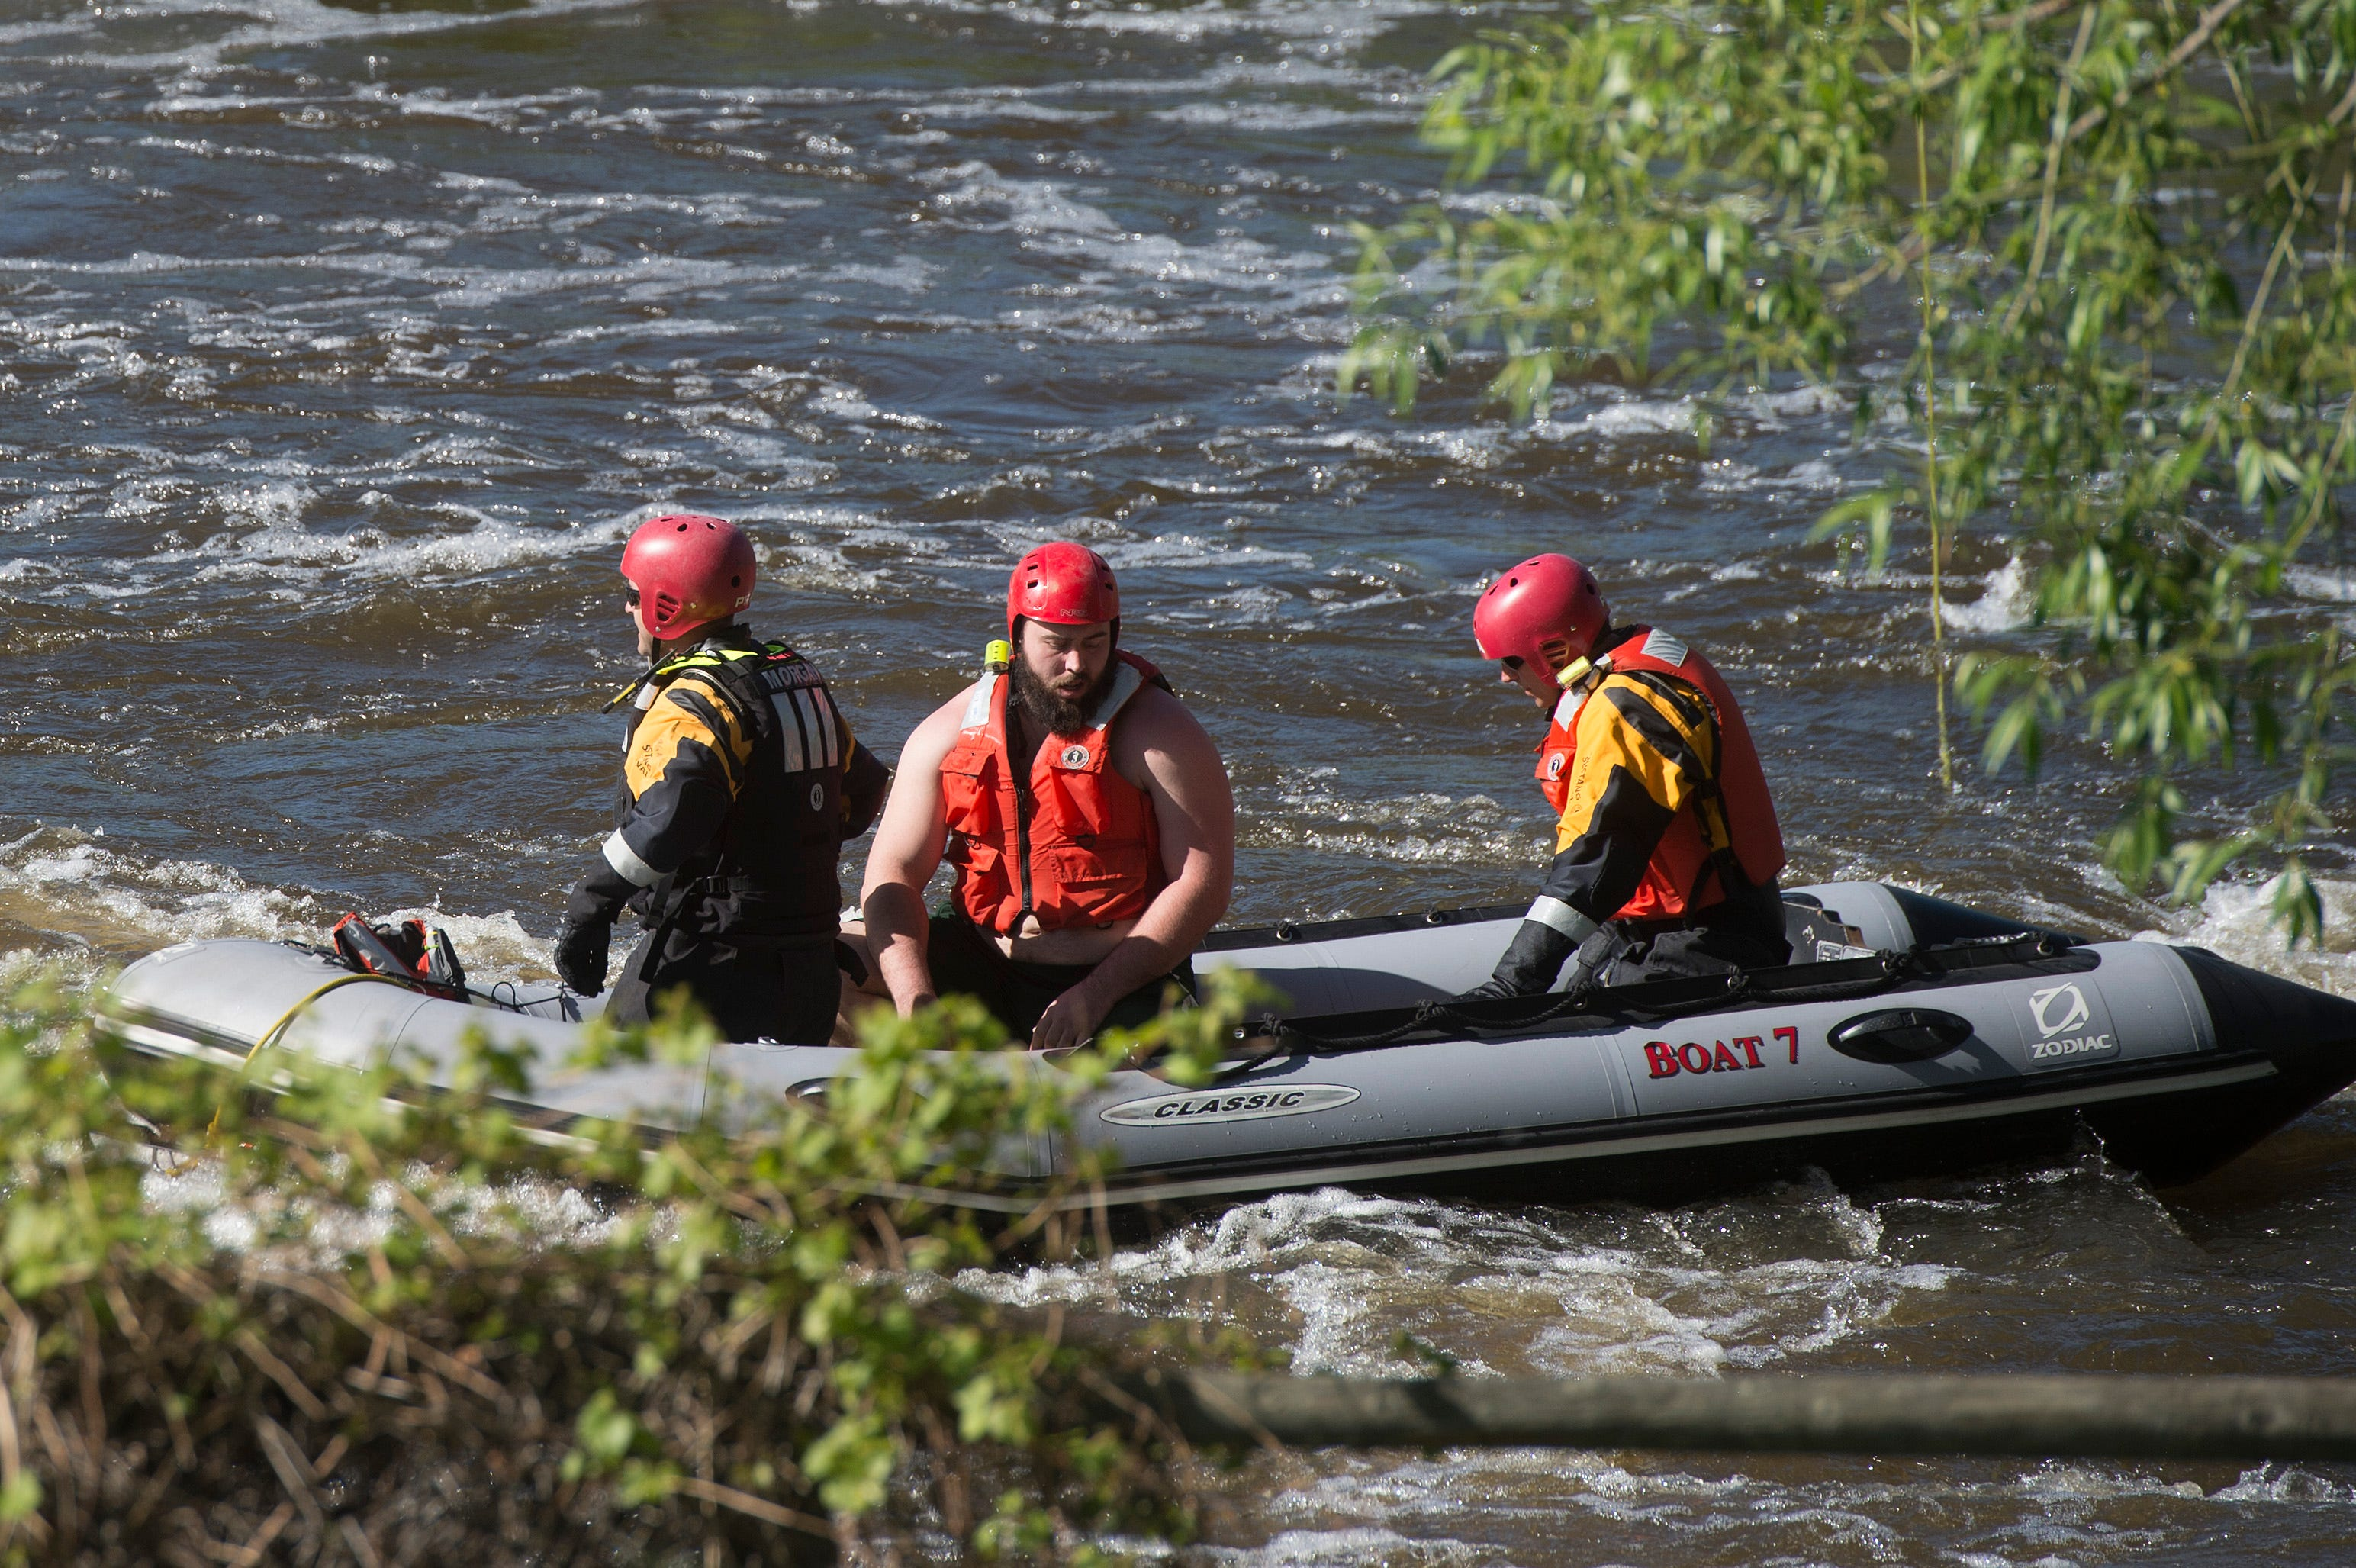 Woman rescued from the river